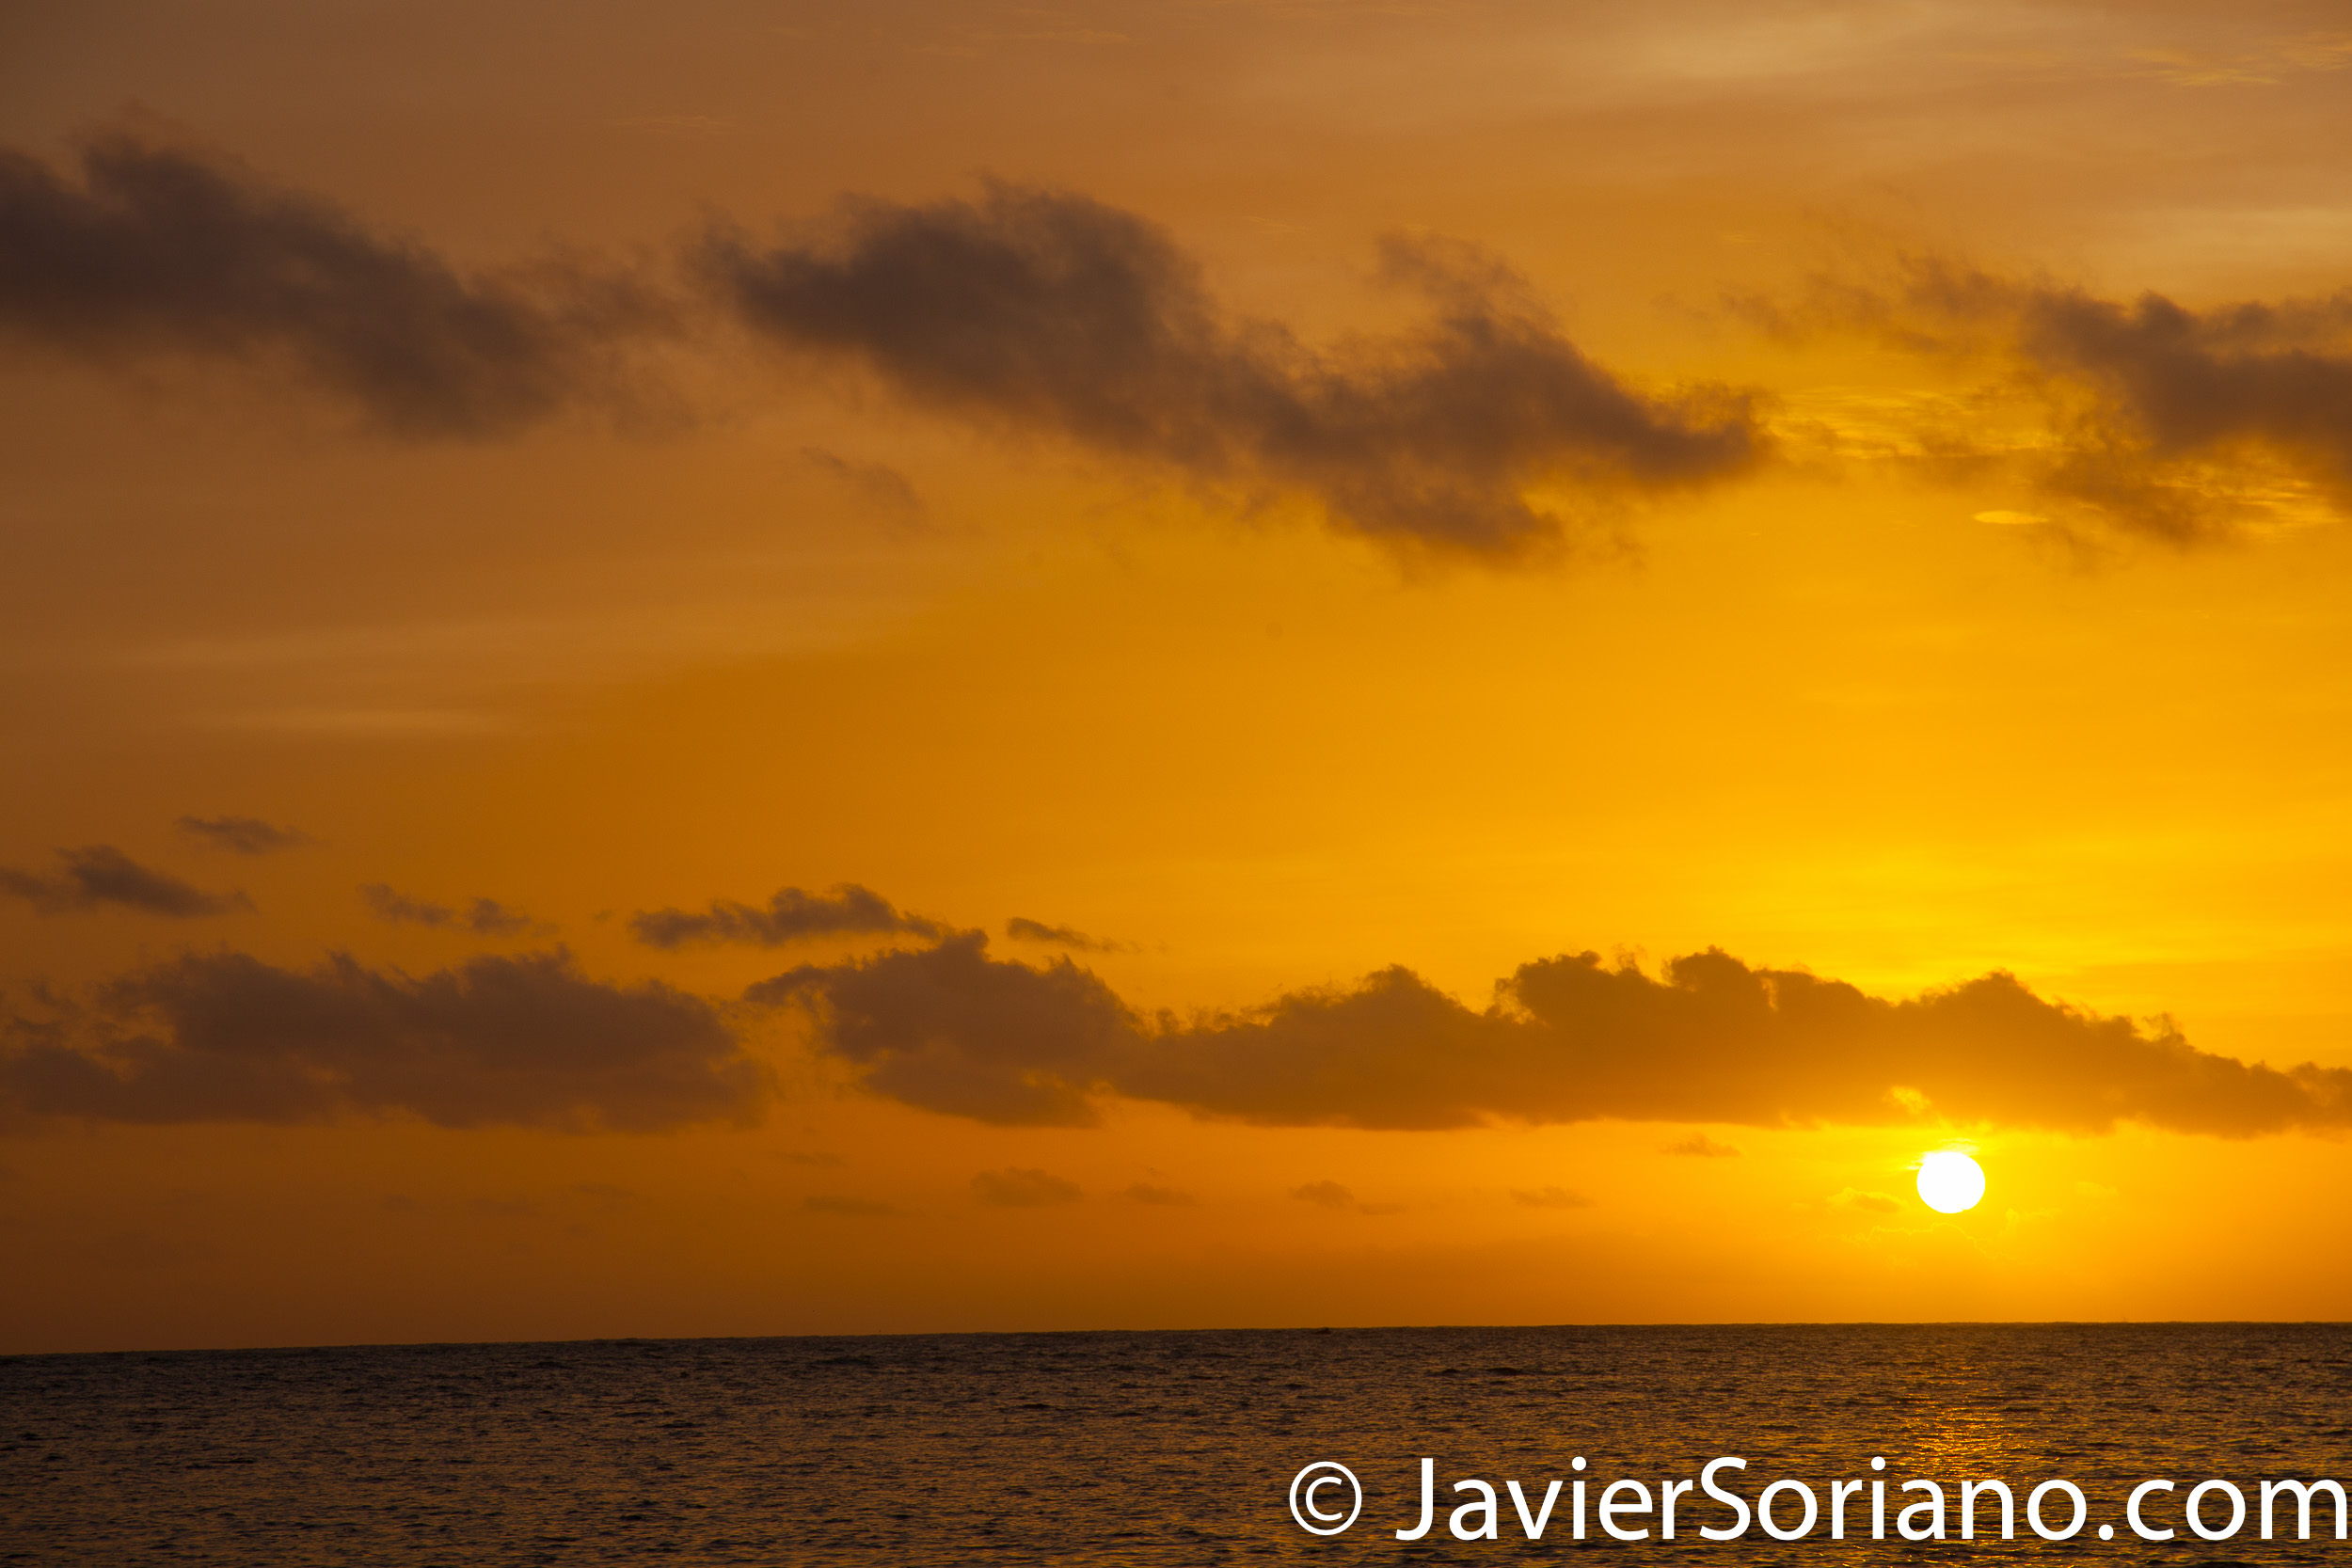 9/16/2017. Melia Coco Beach Resort. Rio Grande. Puerto Rico. Finally. I colorful sunrise. Thanks universe! Happy Mexican Independence Day! ¡Viva México! Photo by Javier Soriano/www.JavierSoriano.com